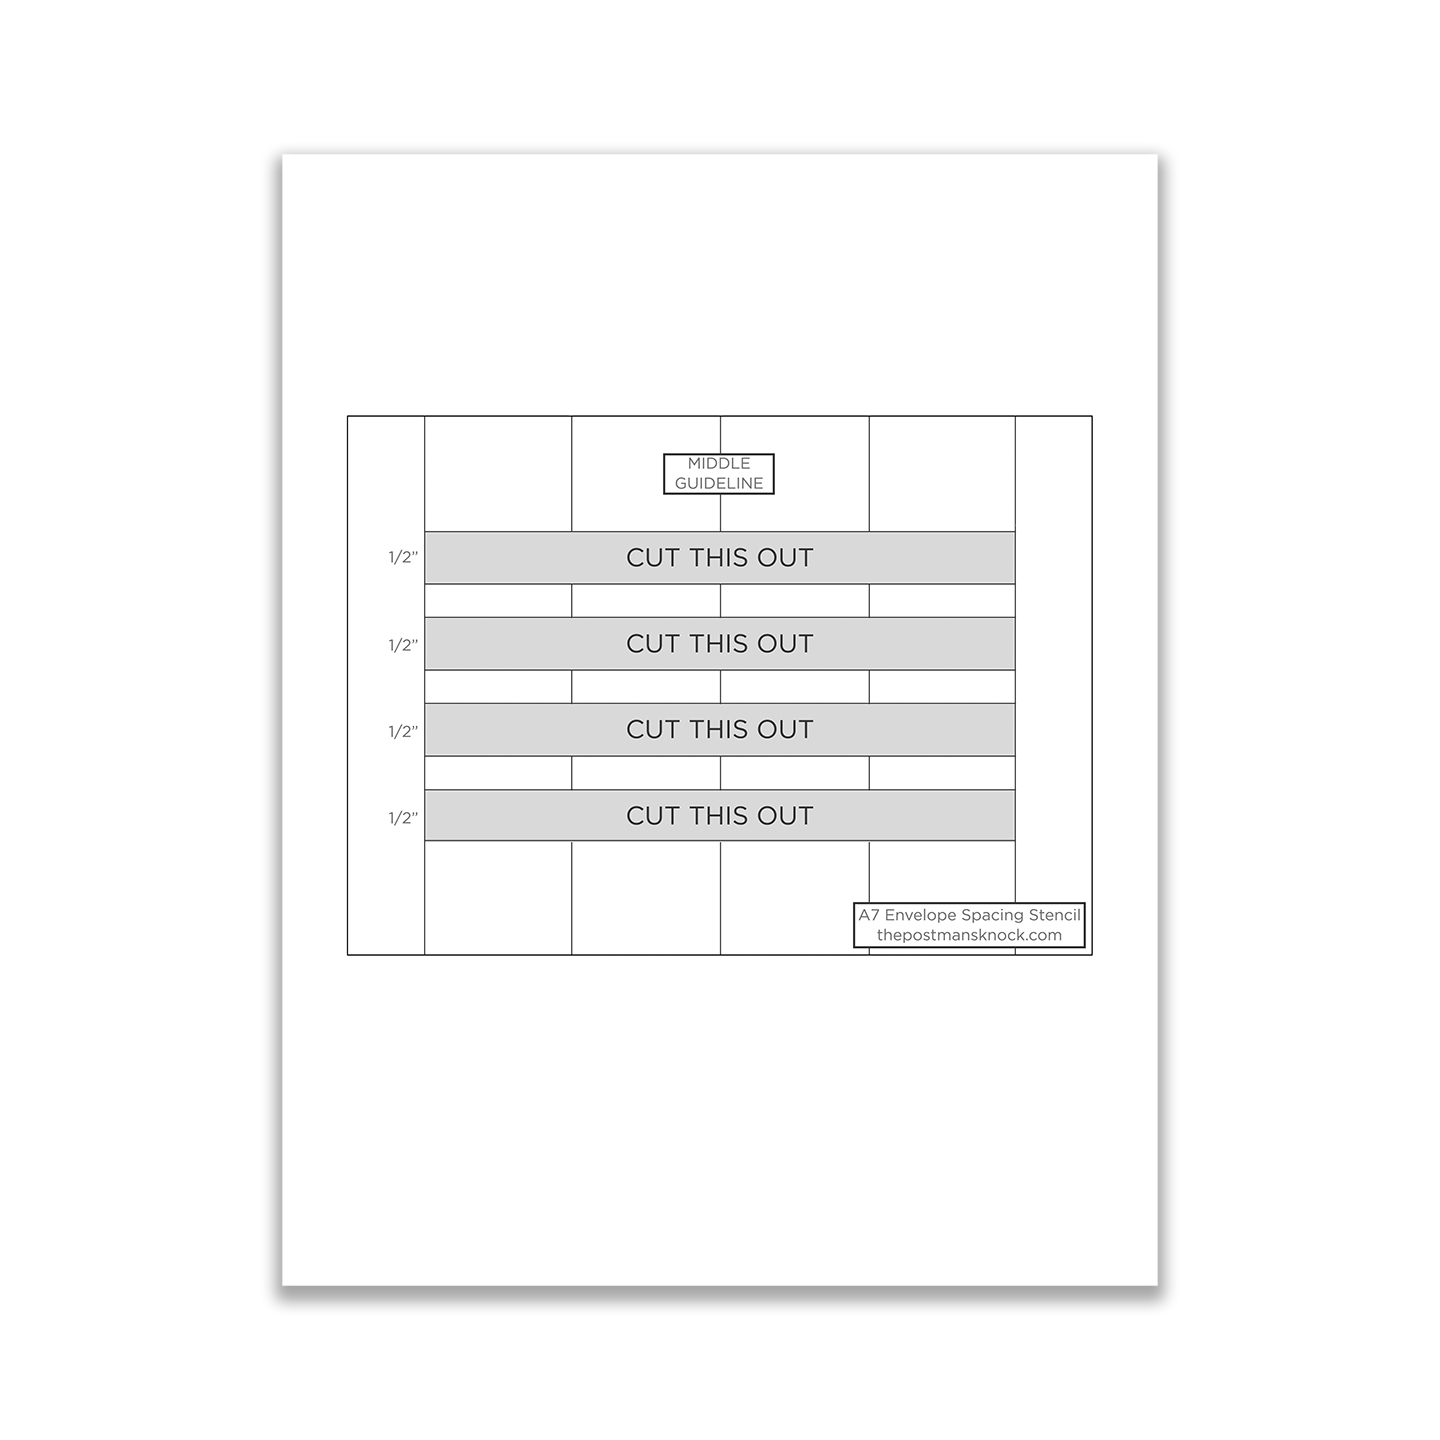 Magnificent 1 Hexagon Template Thin 1 Year Calendar Template Shaped 1 Year Experienced Software Developer Resume Sample 1.25 Button Template Old 1.5 Binder Spine Template Blue1st Birthday Card Template Printable A7 Envelope Stencil | The Postman\u0027s Knock